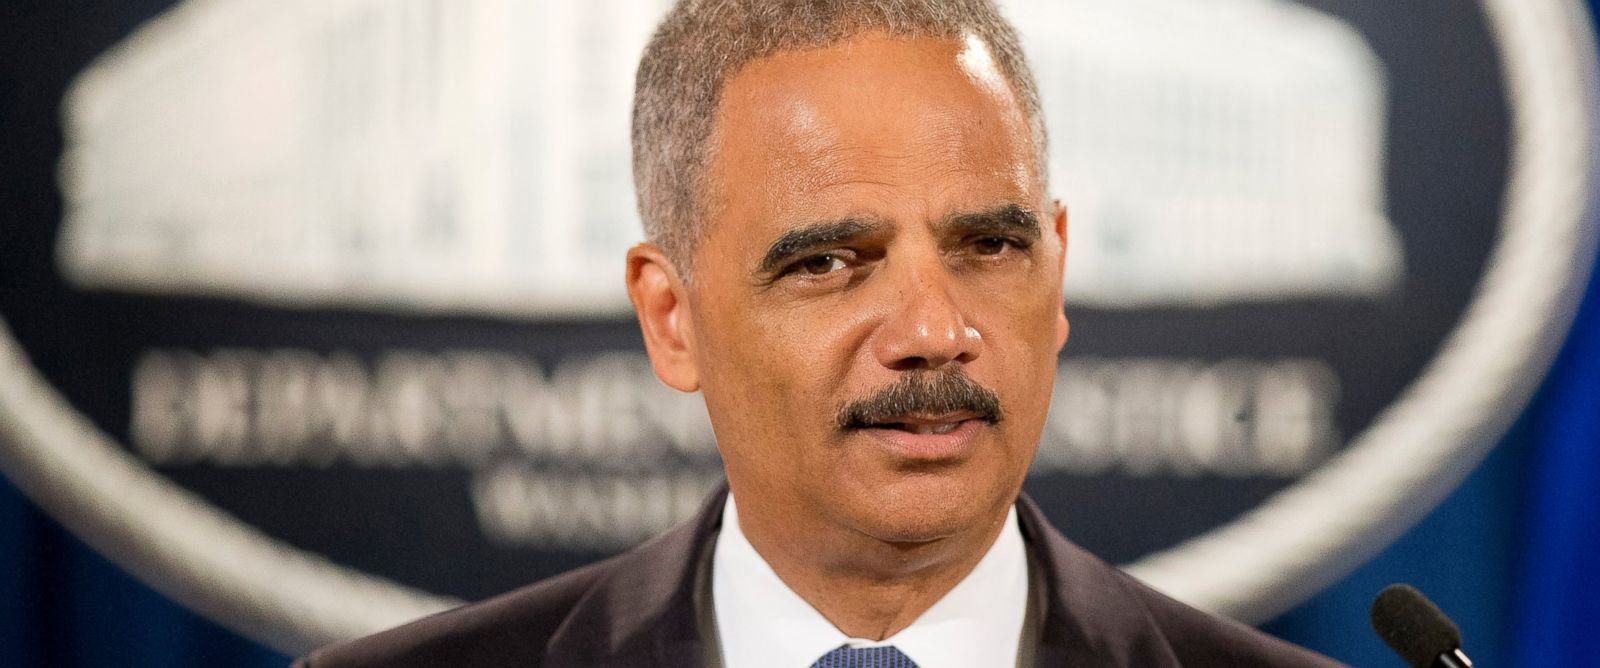 PHOTO: Attorney General Eric Holder speaks during a news conference at the Justice Department in Washington, Sept. 4, 2014.